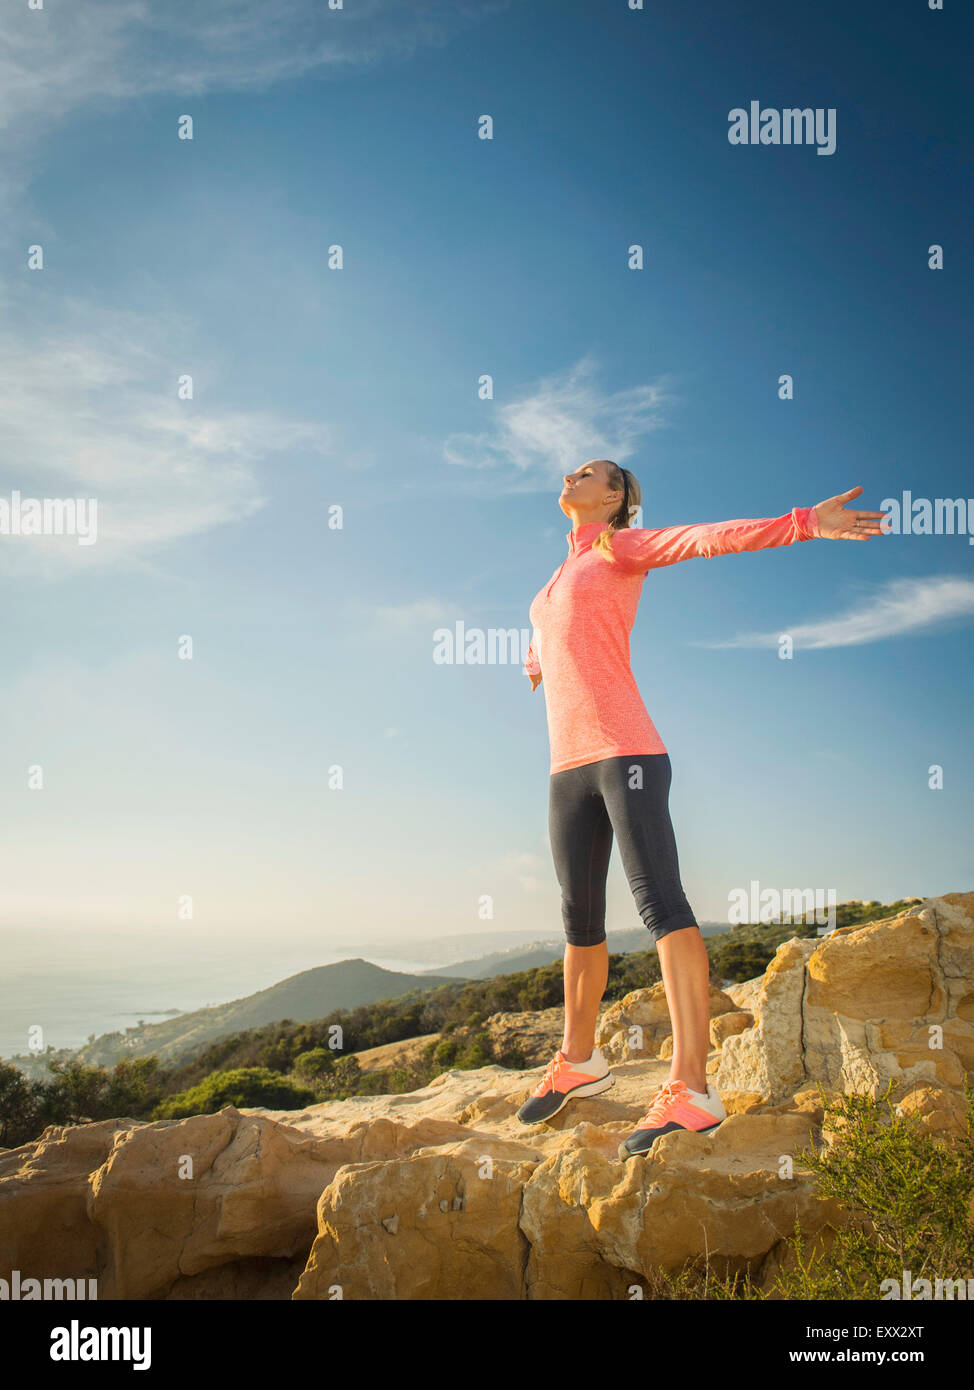 Woman in sportswear with outstretched arms - Stock Image